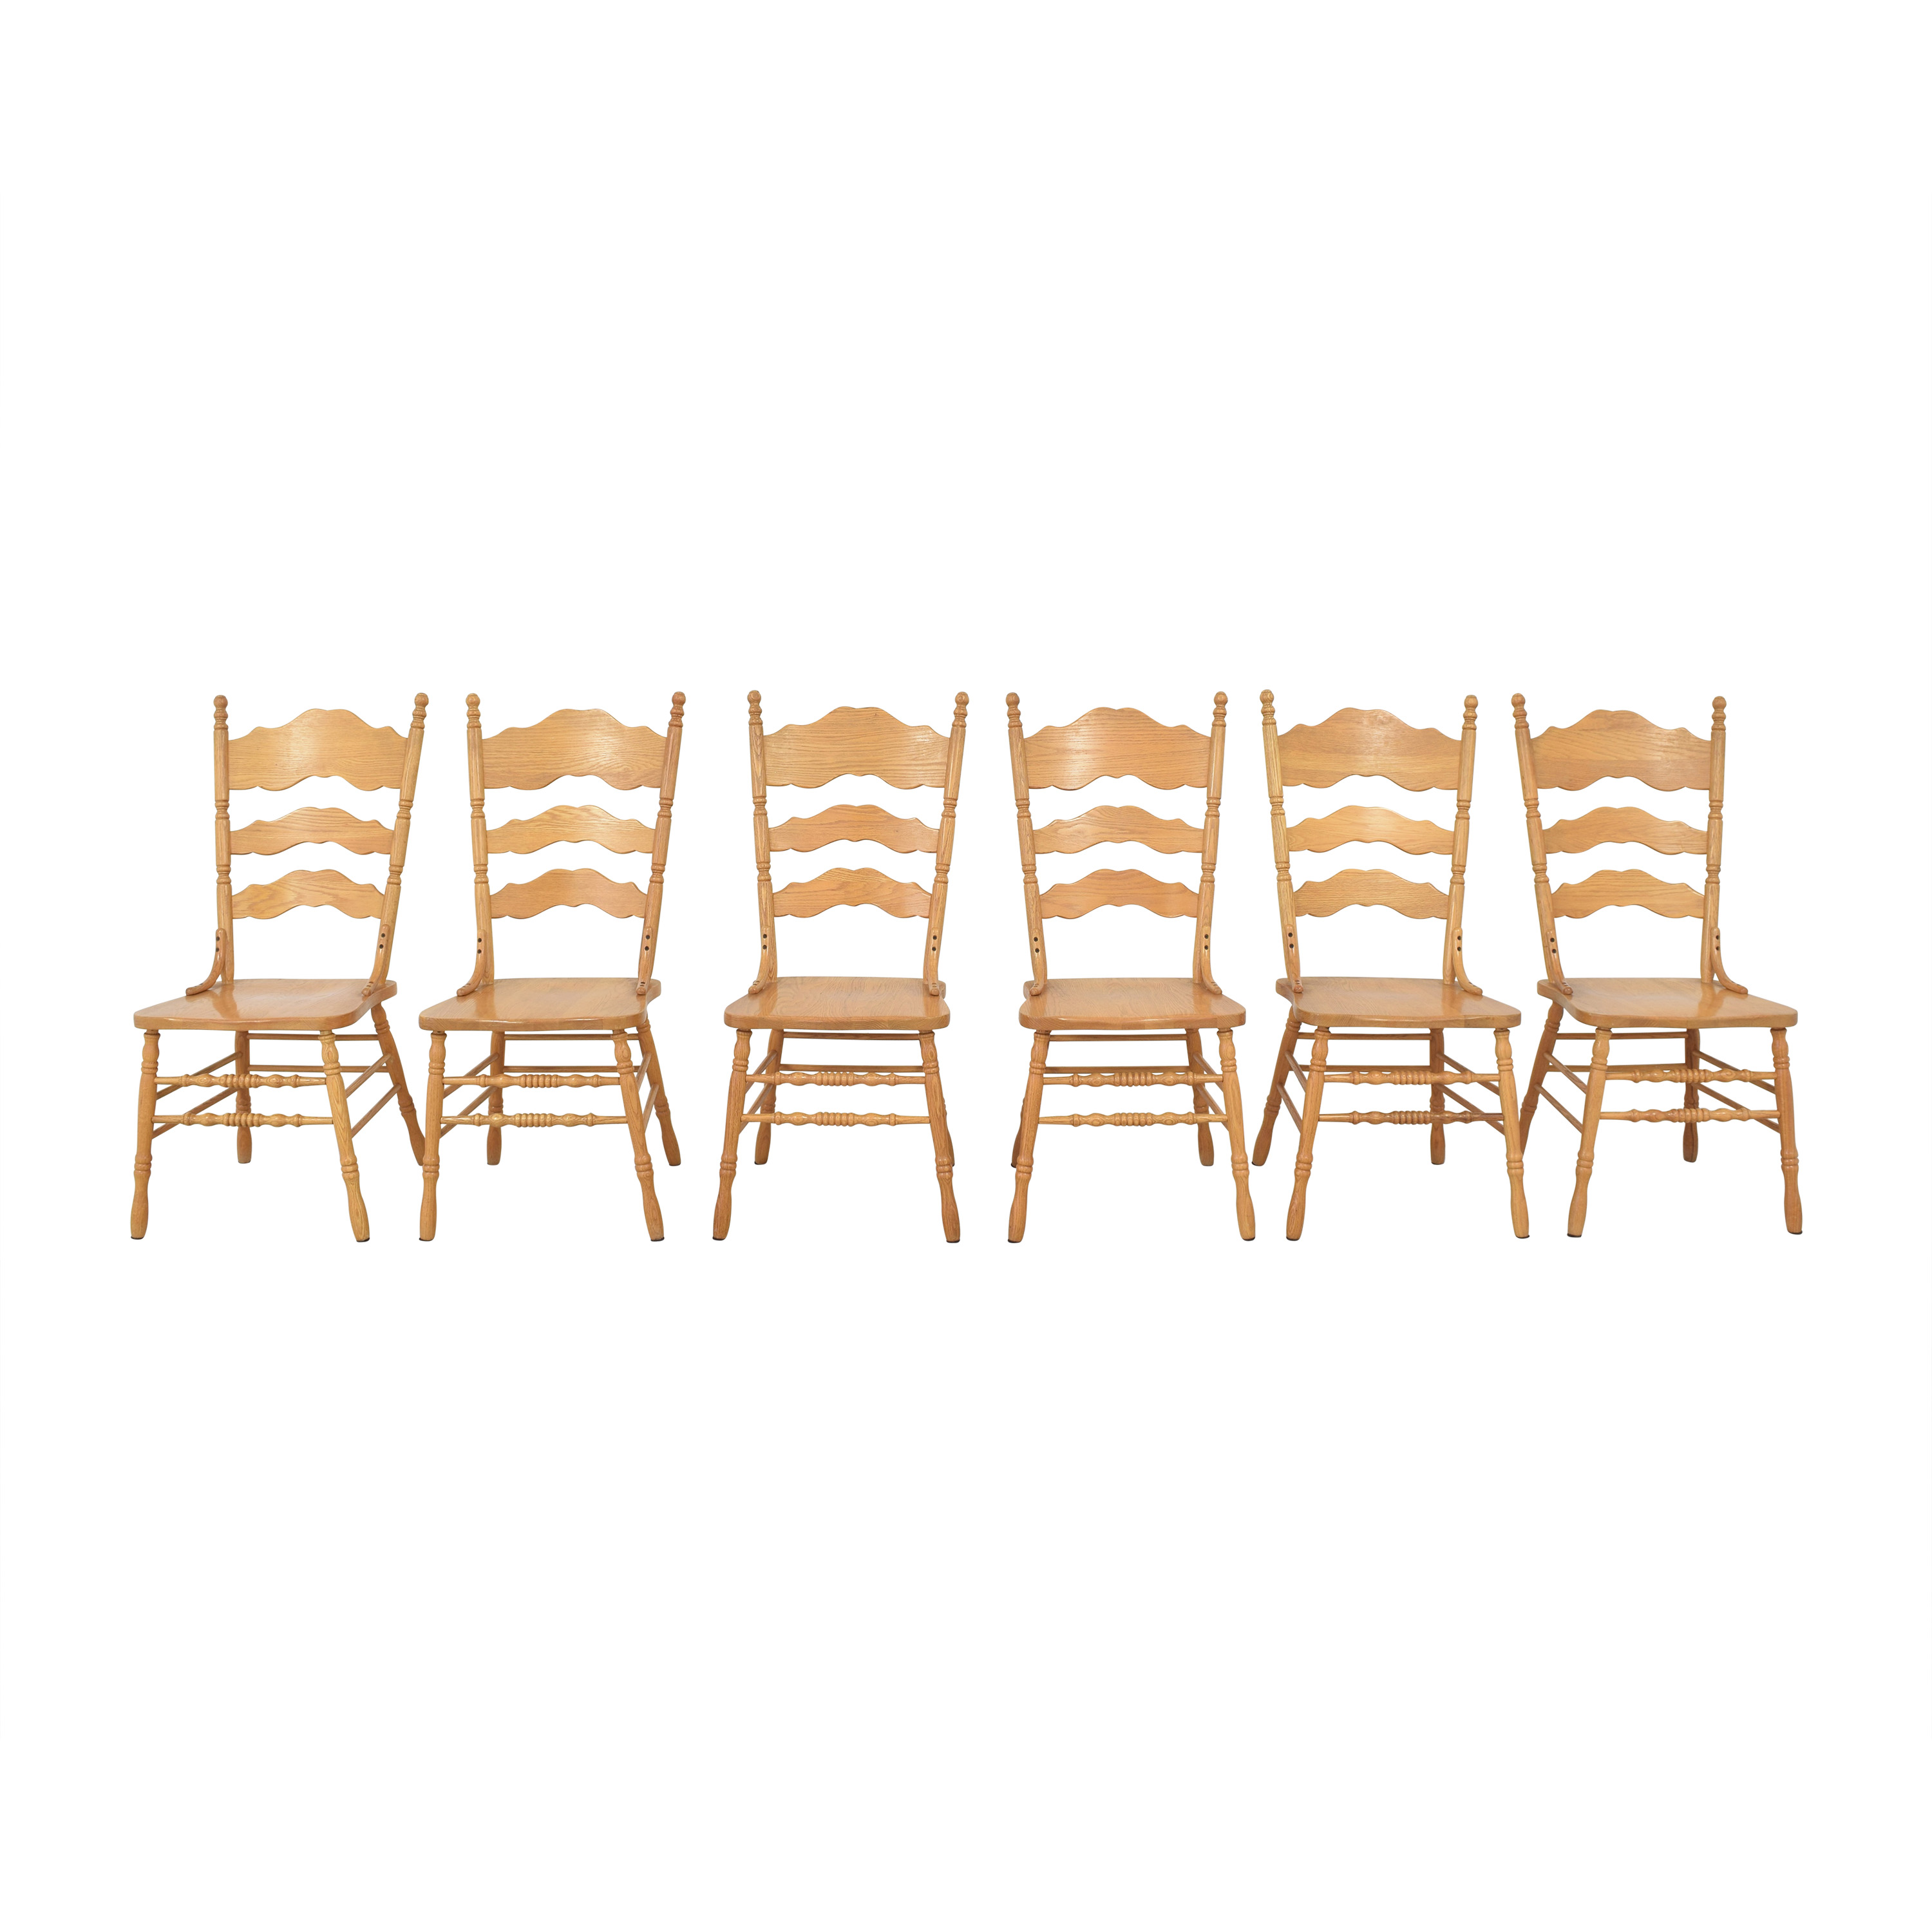 Shin-Lee Ladder Back Dining Chairs Shin-Lee